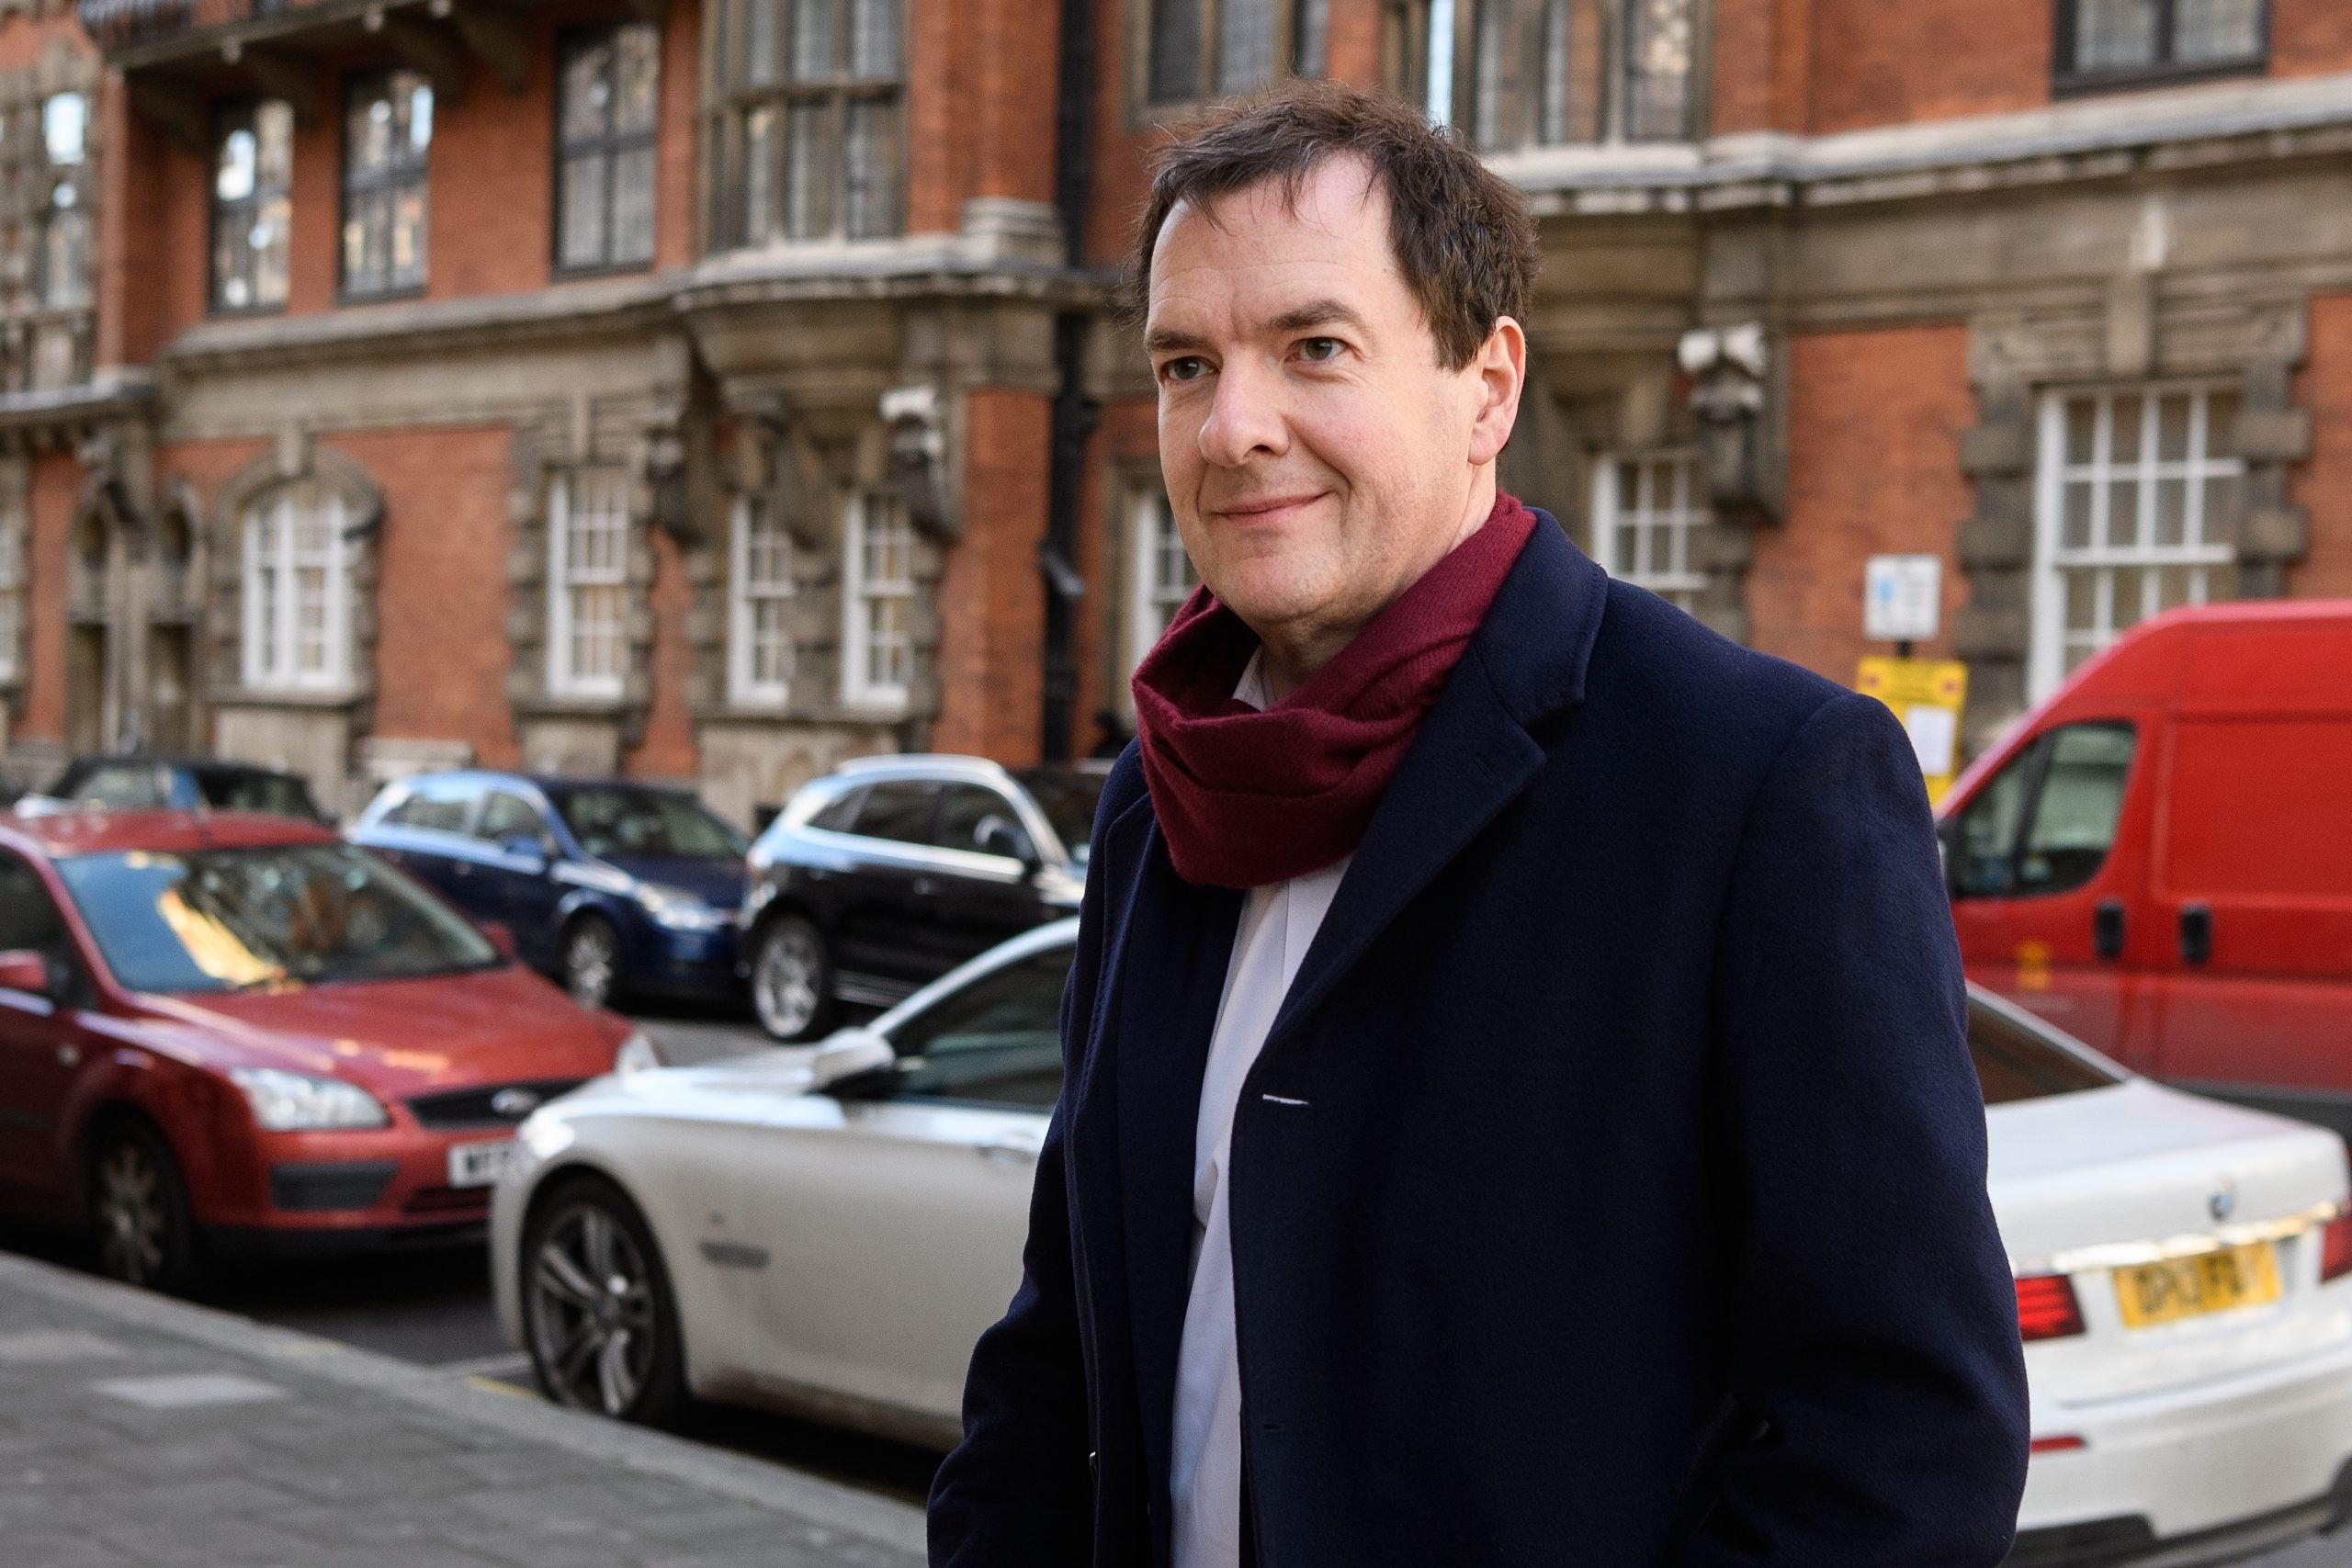 Six vodkas and five champagnes down, and it's time to talk to George Osborne